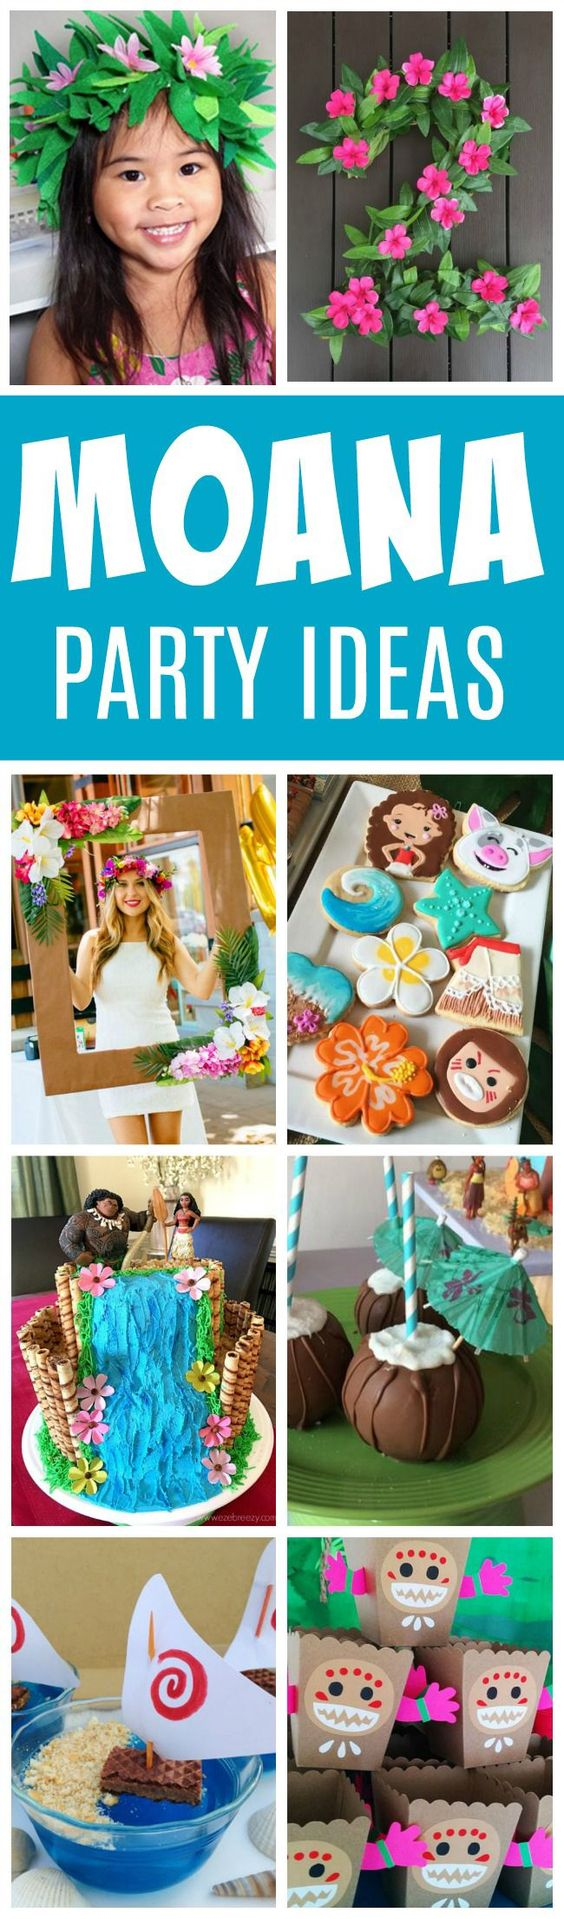 27 Disney Moana Birthday Party Ideas Pretty My Party